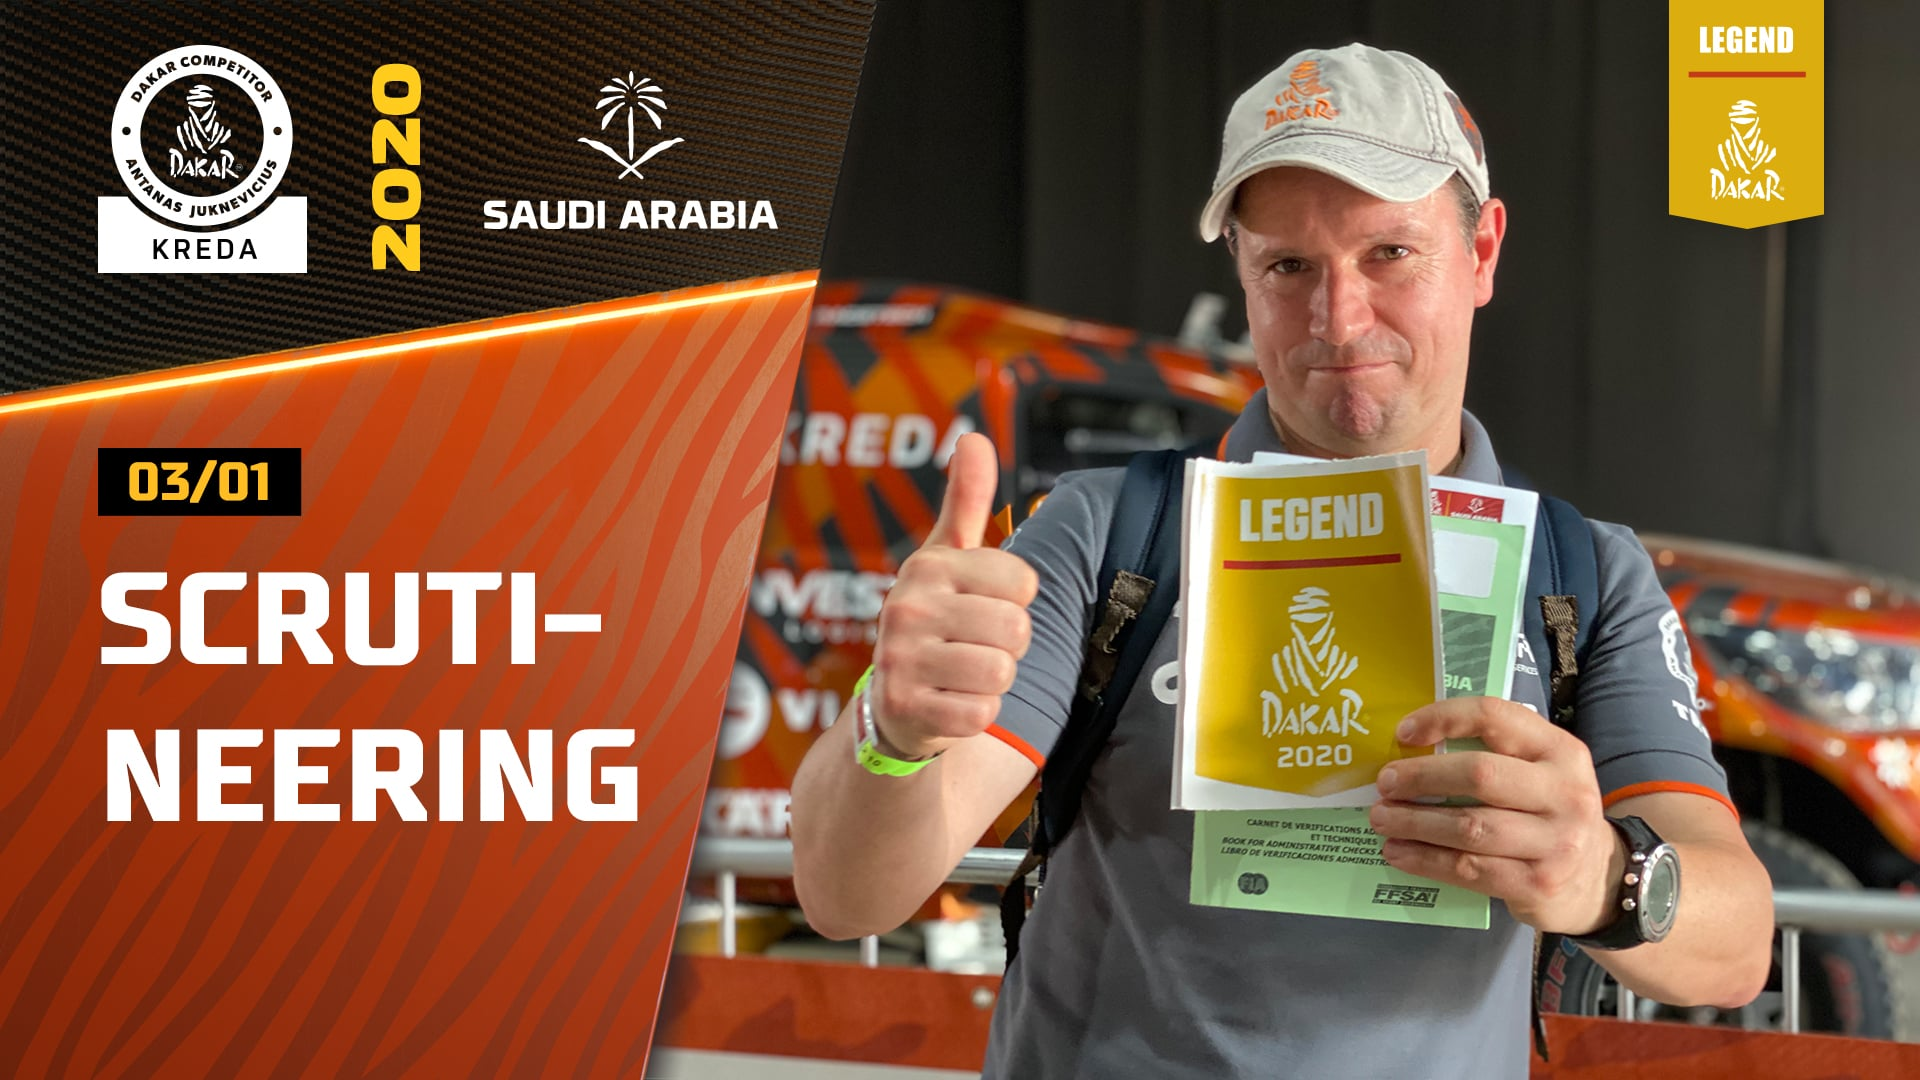 Dakar rally 2020. Scrutineering & Administrative Checks, Dakar Legend Sticker